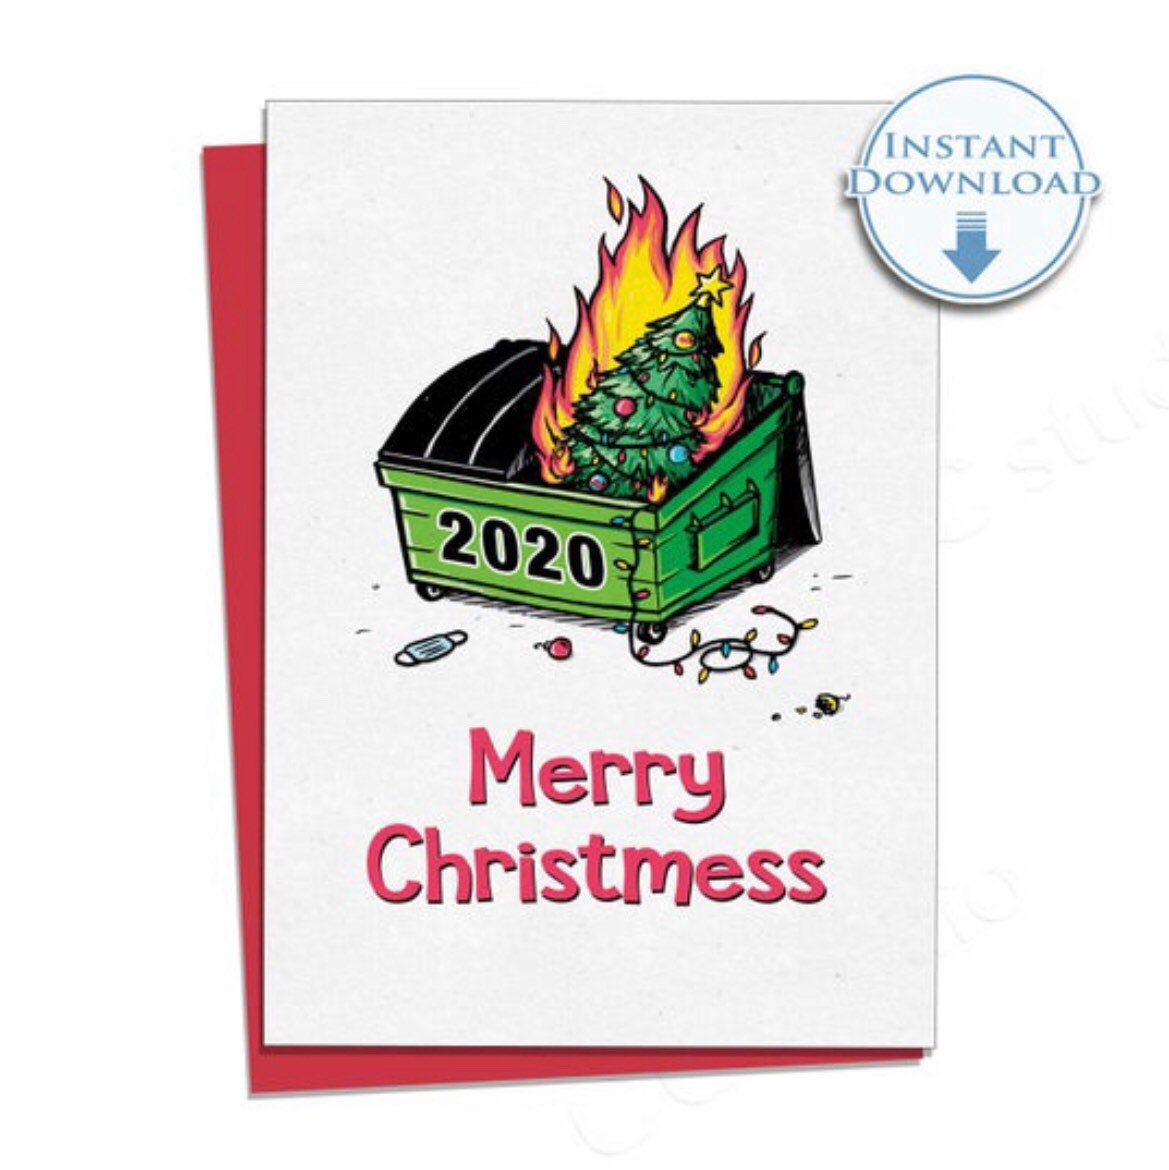 Are You In Need Of A Last Minute Christmas Card Idea We Ve Got Ya Covered We Offer A Variety Funny Holiday Cards Funny Christmas Cards Sarcastic Christmas